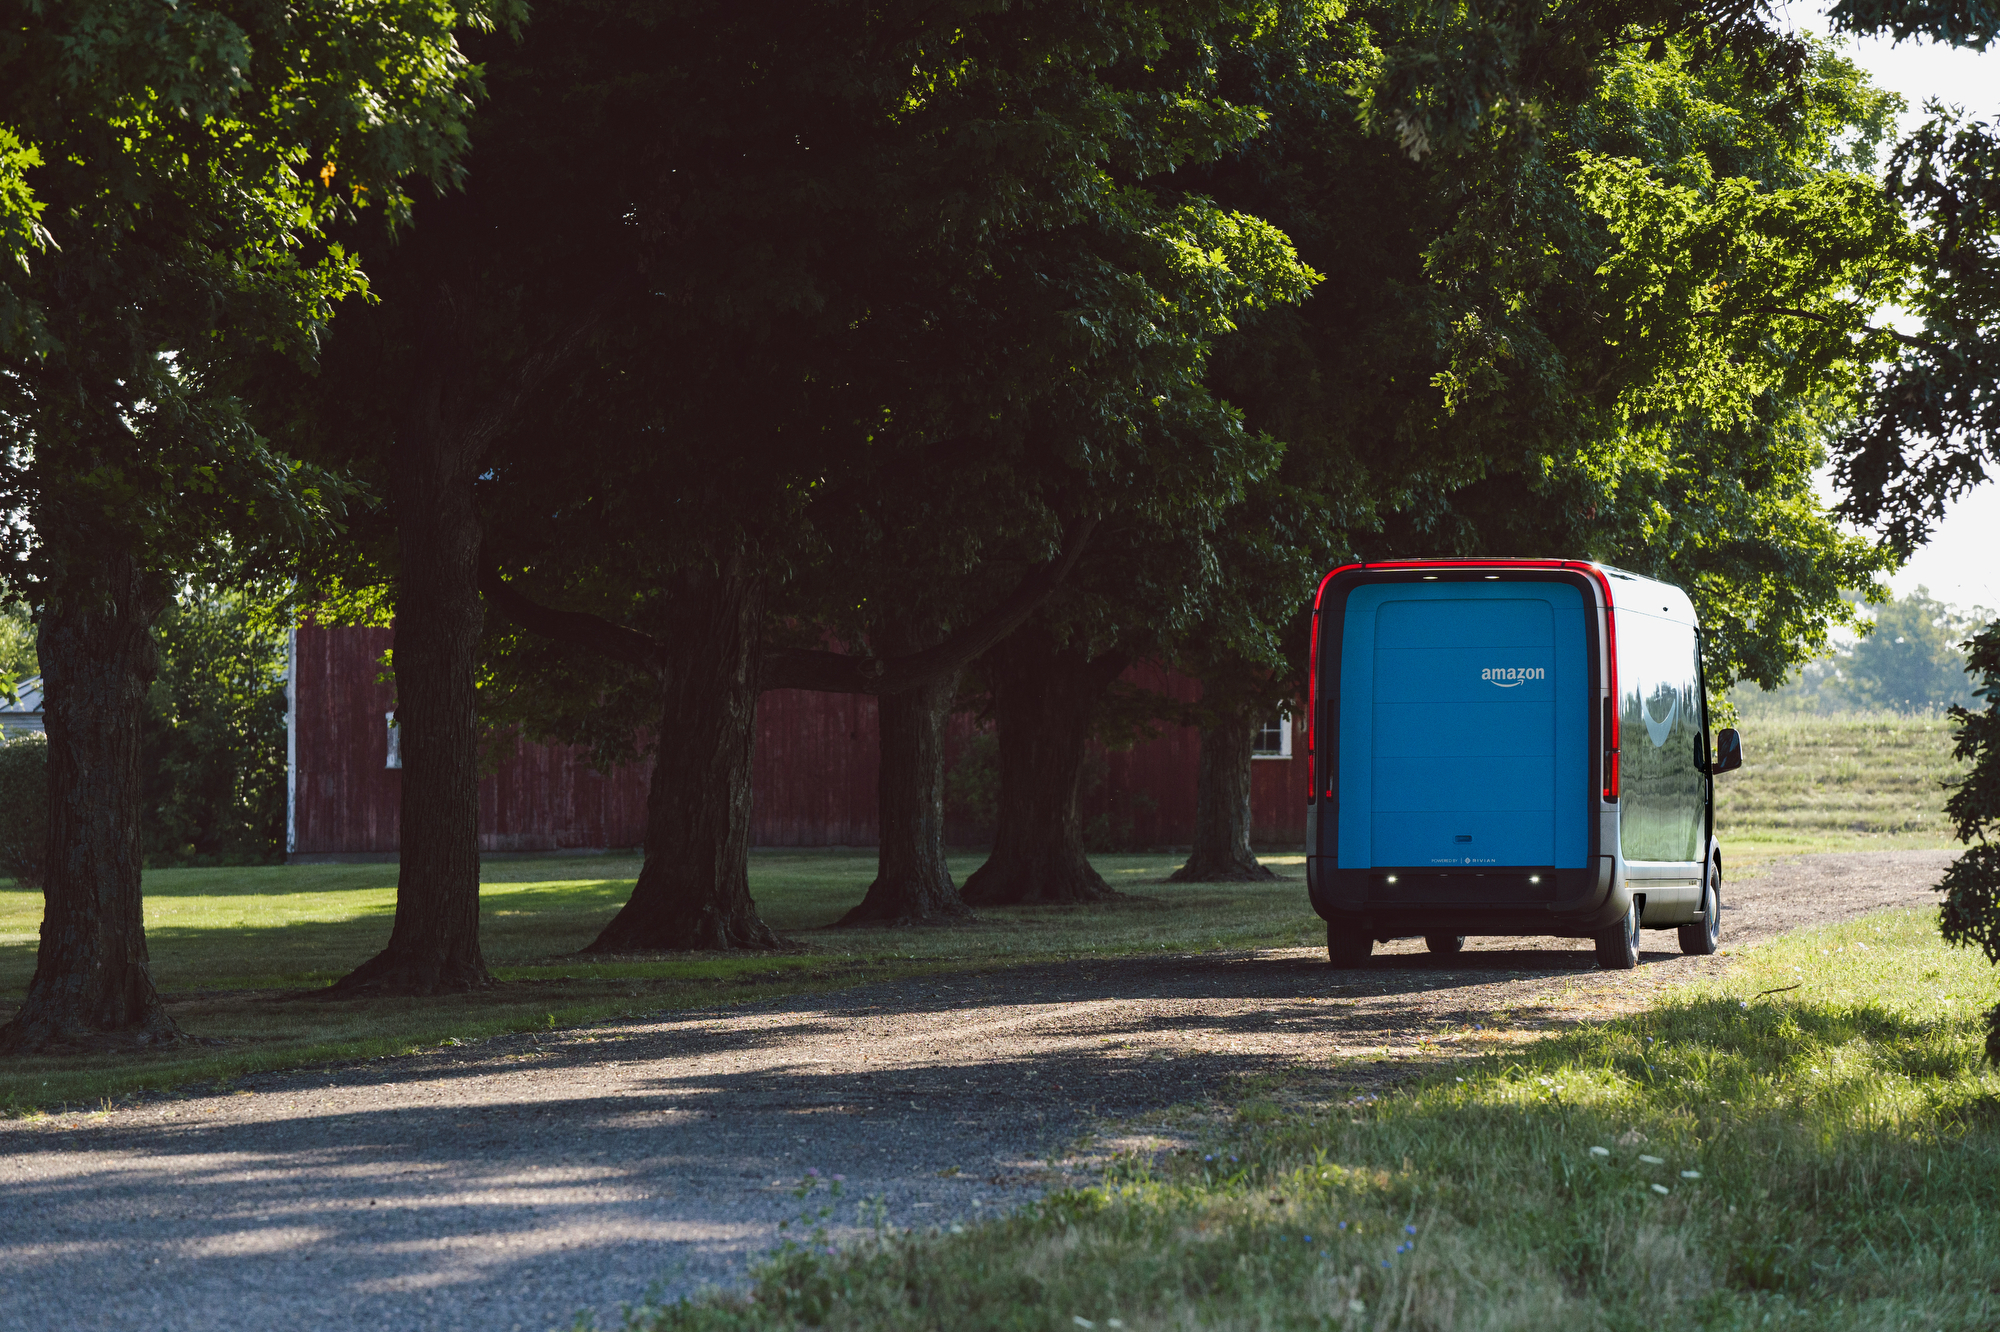 Introducing Amazon's first custom electric delivery vehicle - Image 4